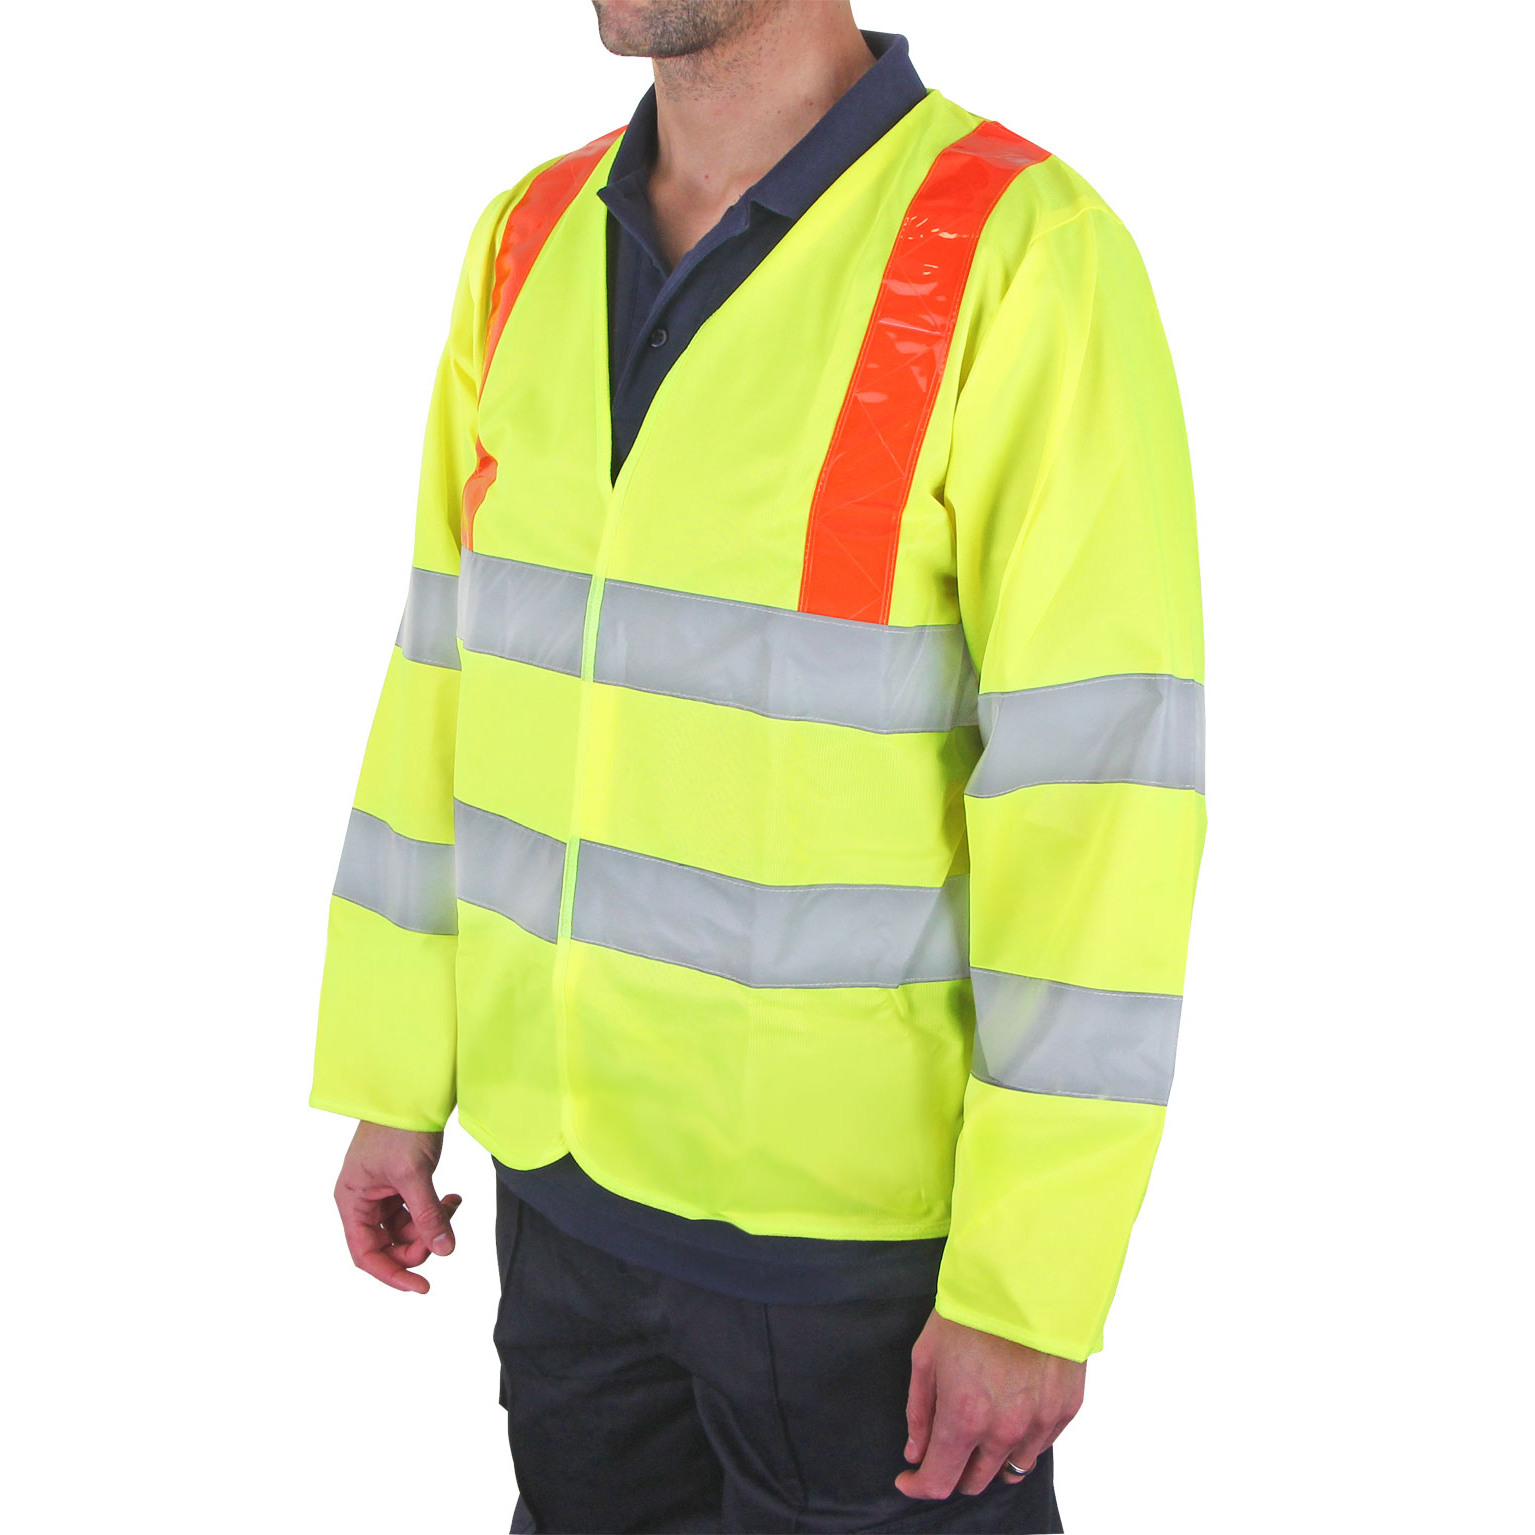 B-Seen High Visibility Long Sleeved Jerkin 4XL Saturn Yellow/Red Ref PKJENG(RT)4XL *Up to 3 Day Leadtime*